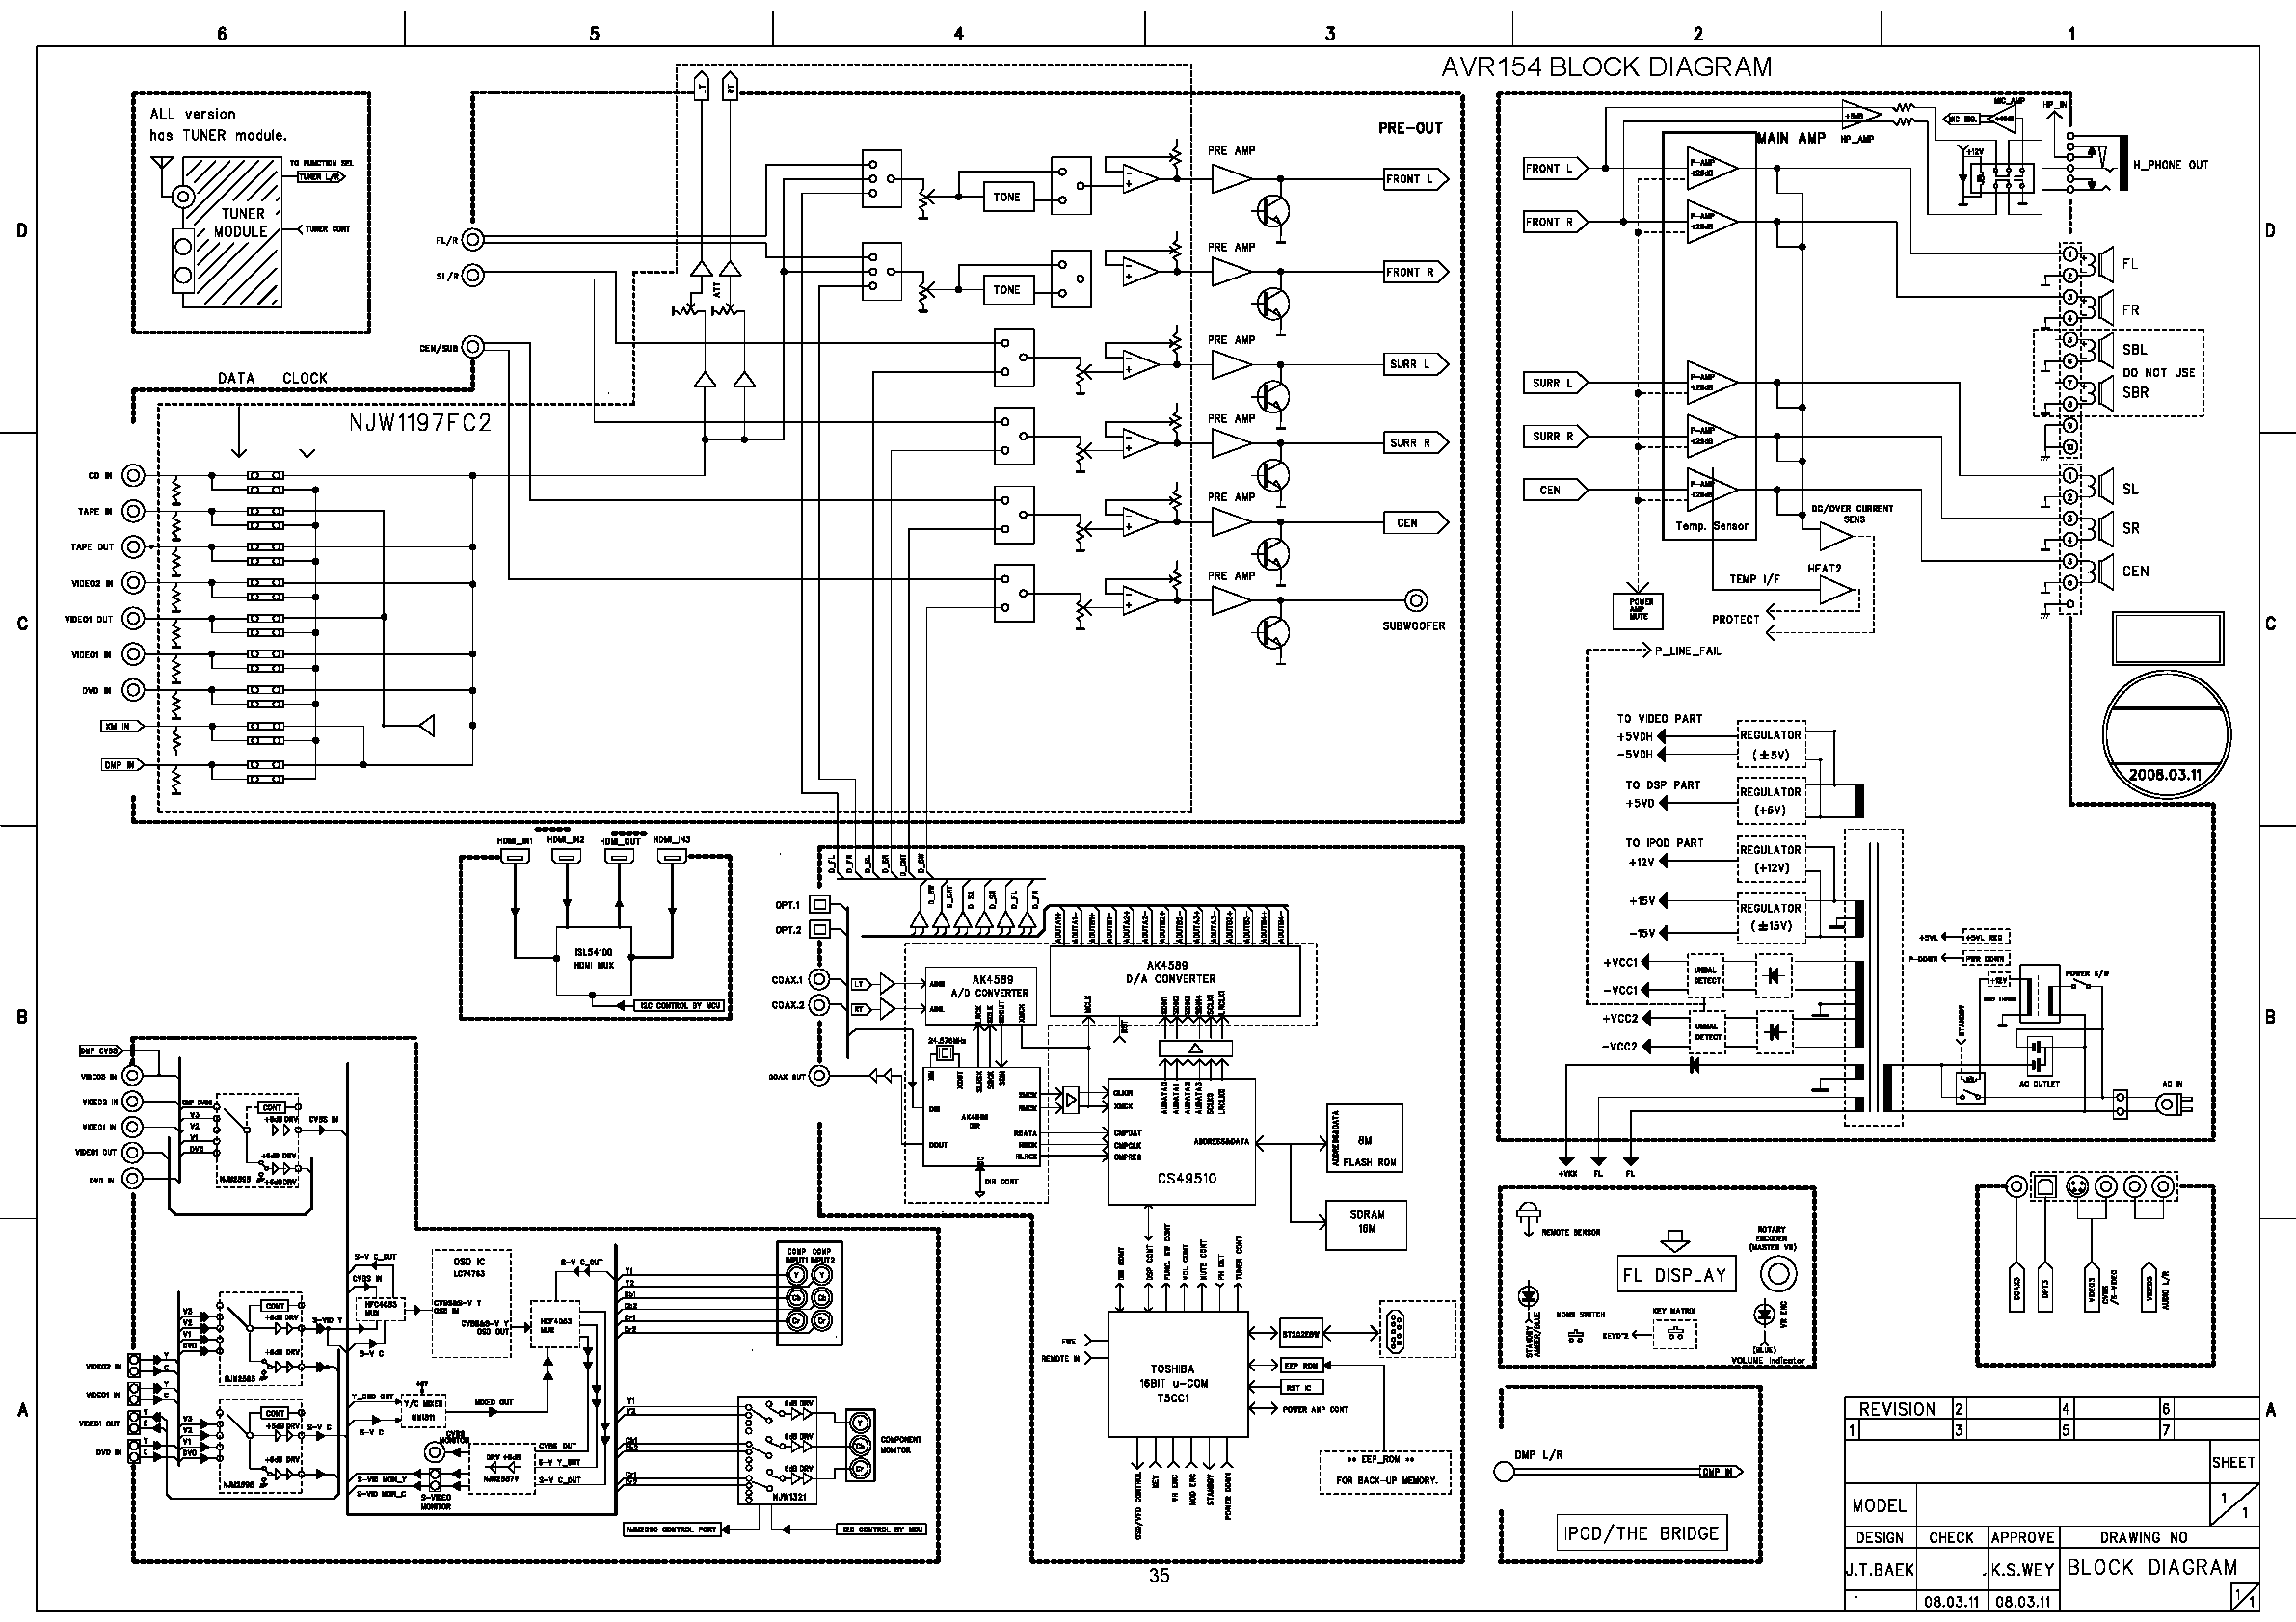 L200 wiring diagram wiring diagram manual mitsubishi l200 wiring diagram blueraritan info l200 wiring diagram l200 wiring diagram pdf l200 wiring diagram cheapraybanclubmaster Images